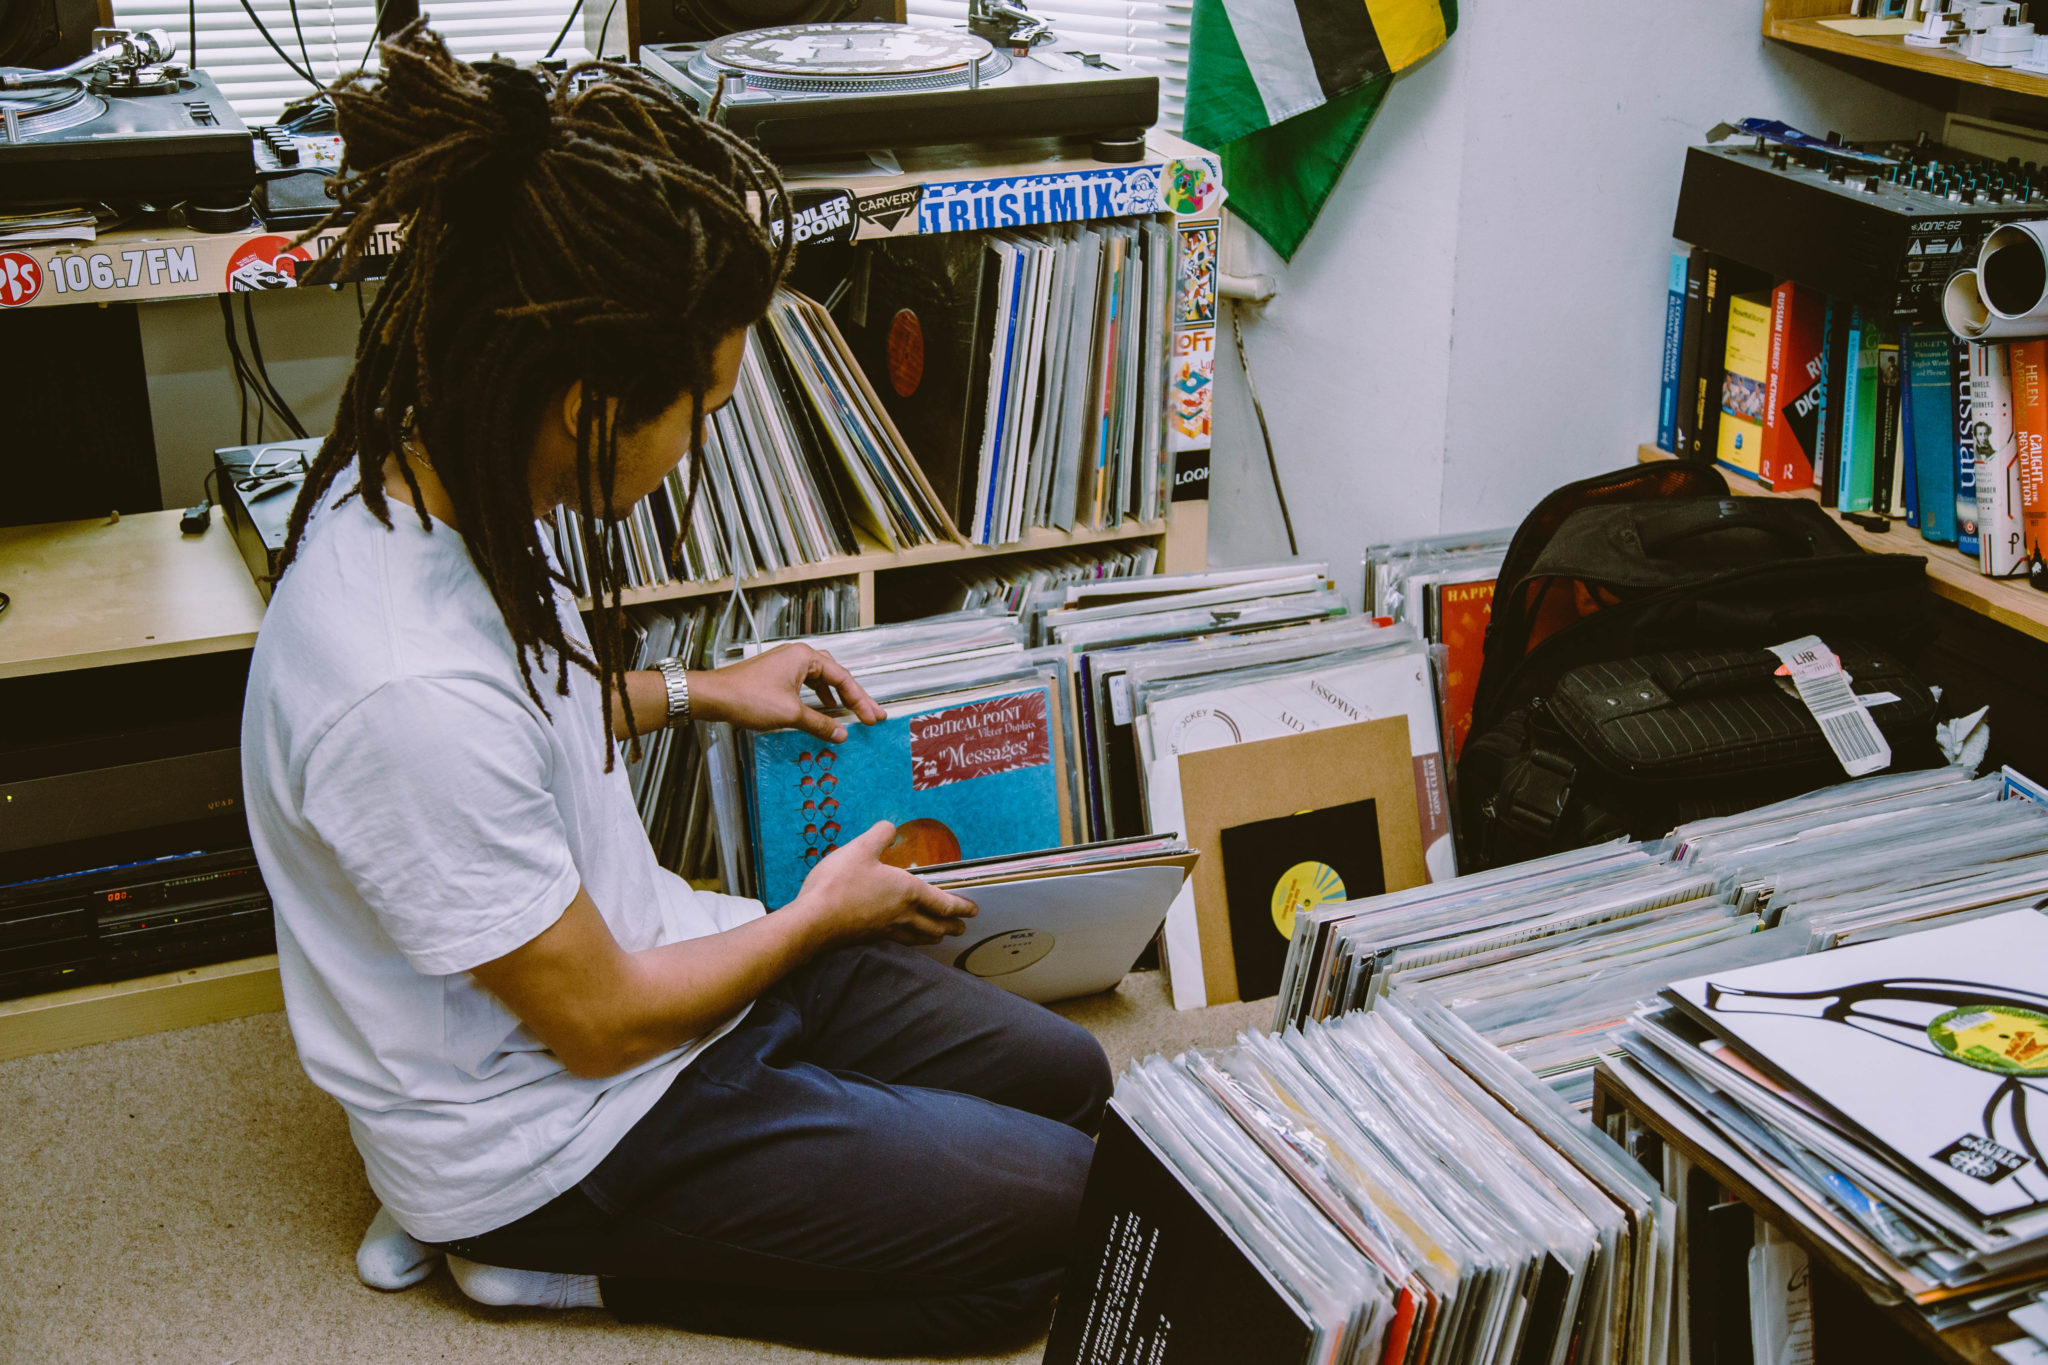 Crate Diggers: Inside Emma-Jean Thackray's record collection